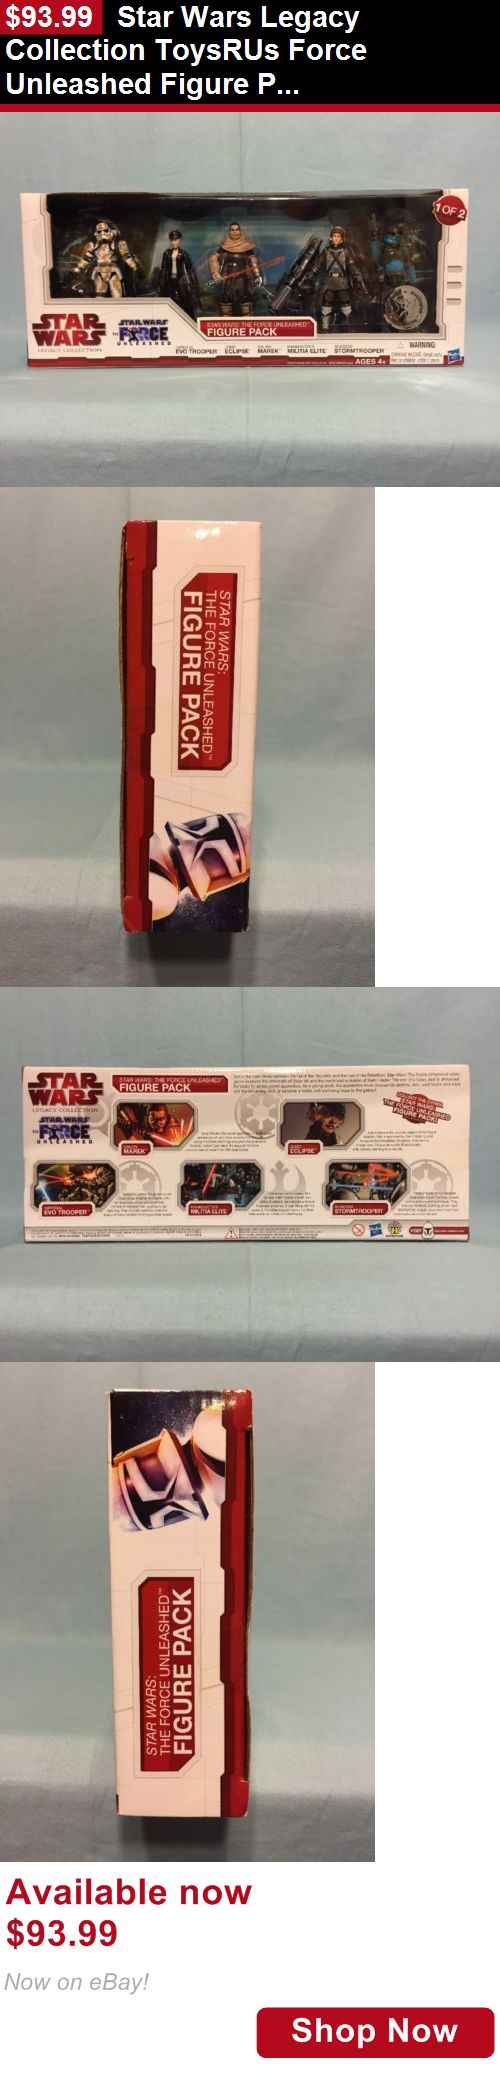 Telescope Filters: Star Wars Legacy Collection Toysrus Force Unleashed Figure Pack 1 Of 2 Misb BUY IT NOW ONLY: $93.99